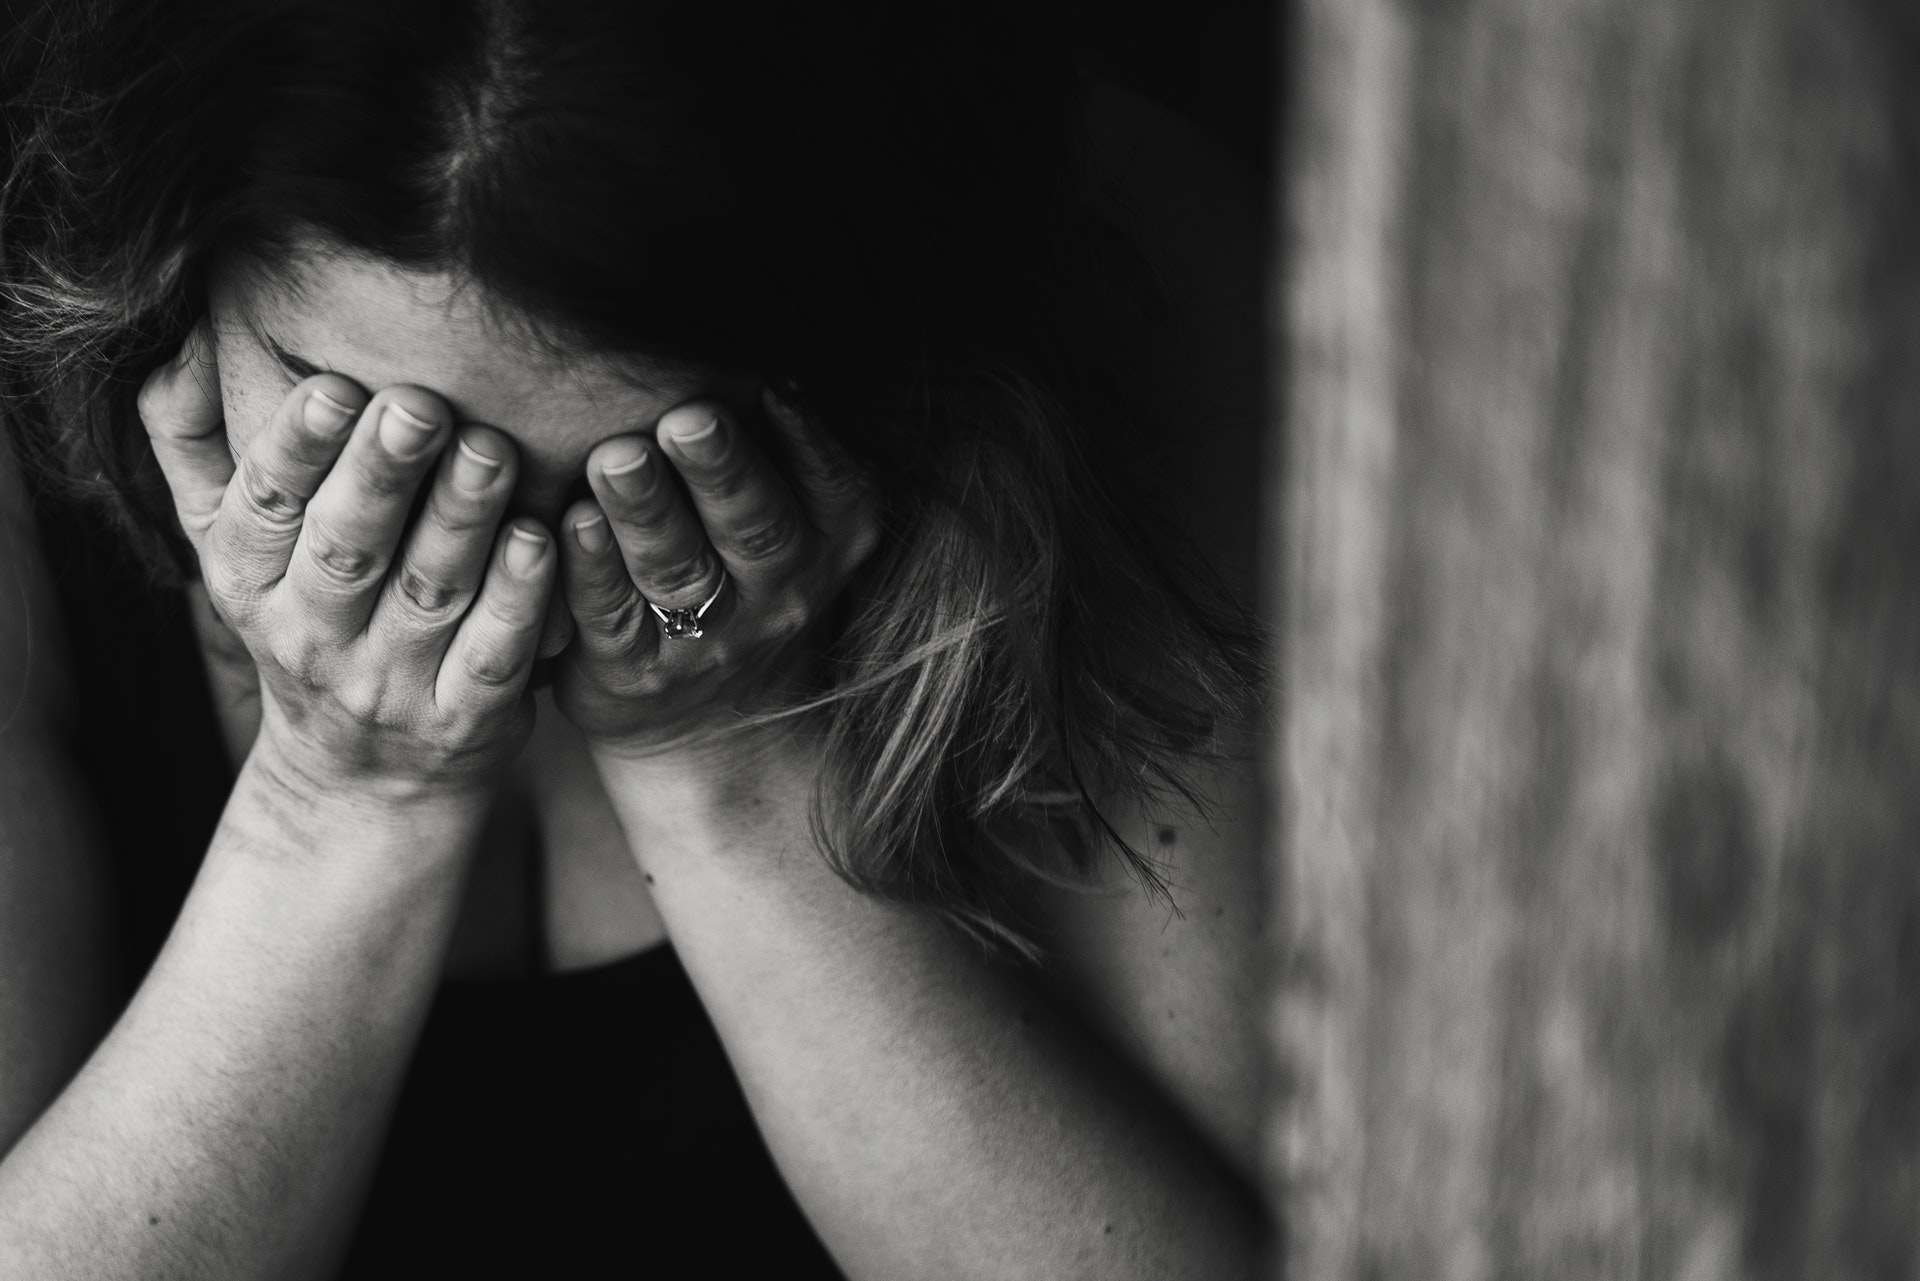 Photo by Kat Smith from Pexels https://www.pexels.com/photo/adult-alone-anxious-black-and-white-568027/